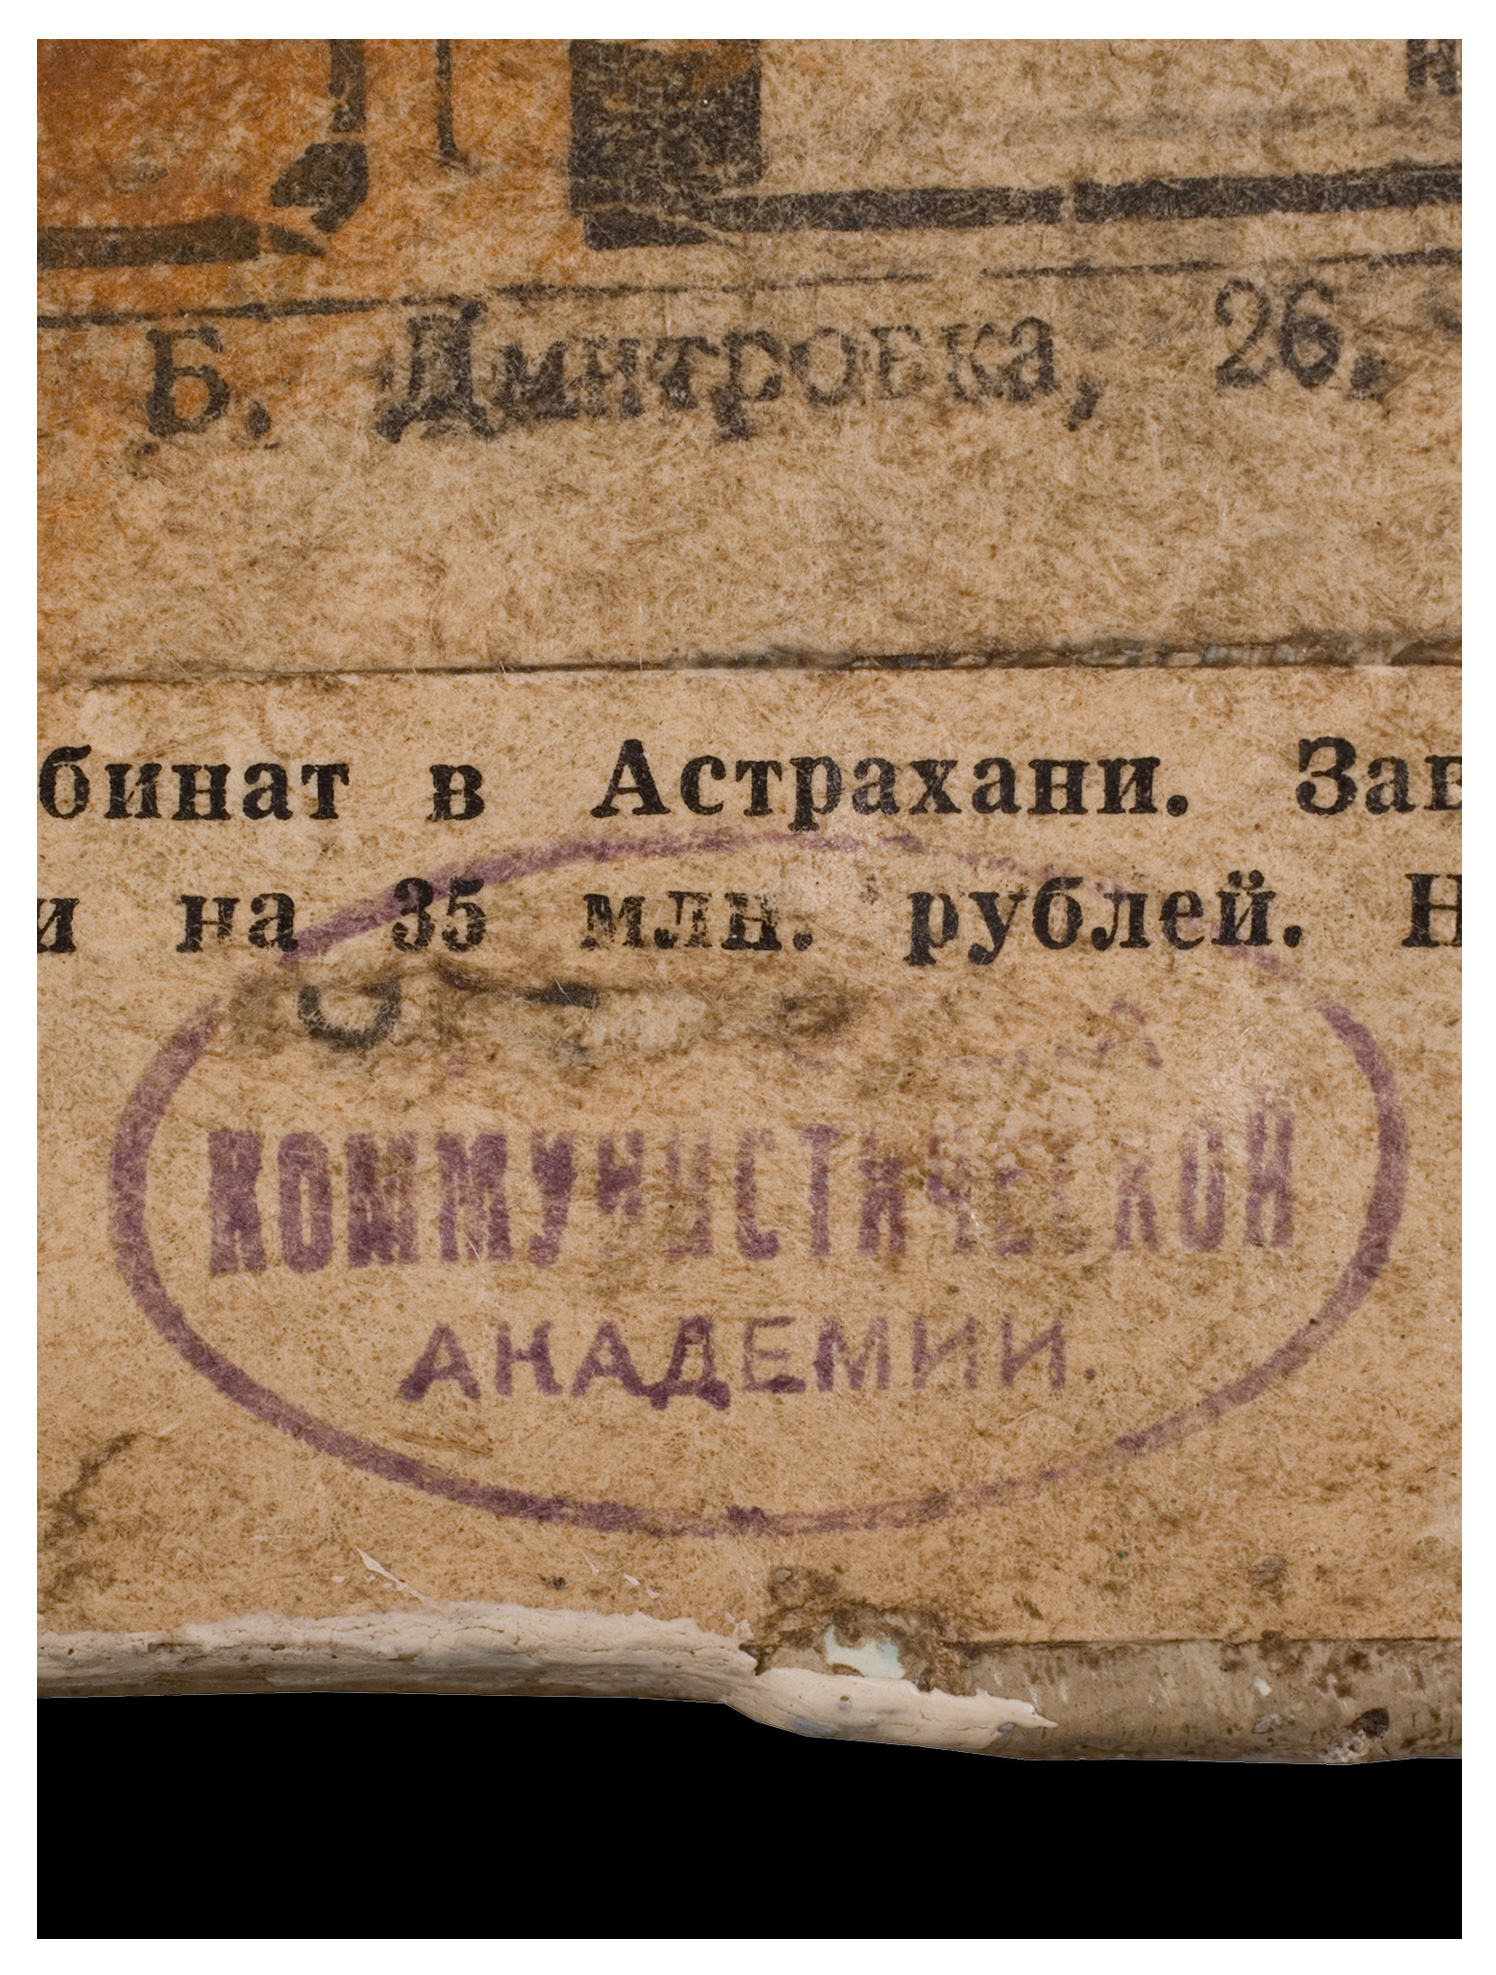 labels-stamps_Page_98.jpg